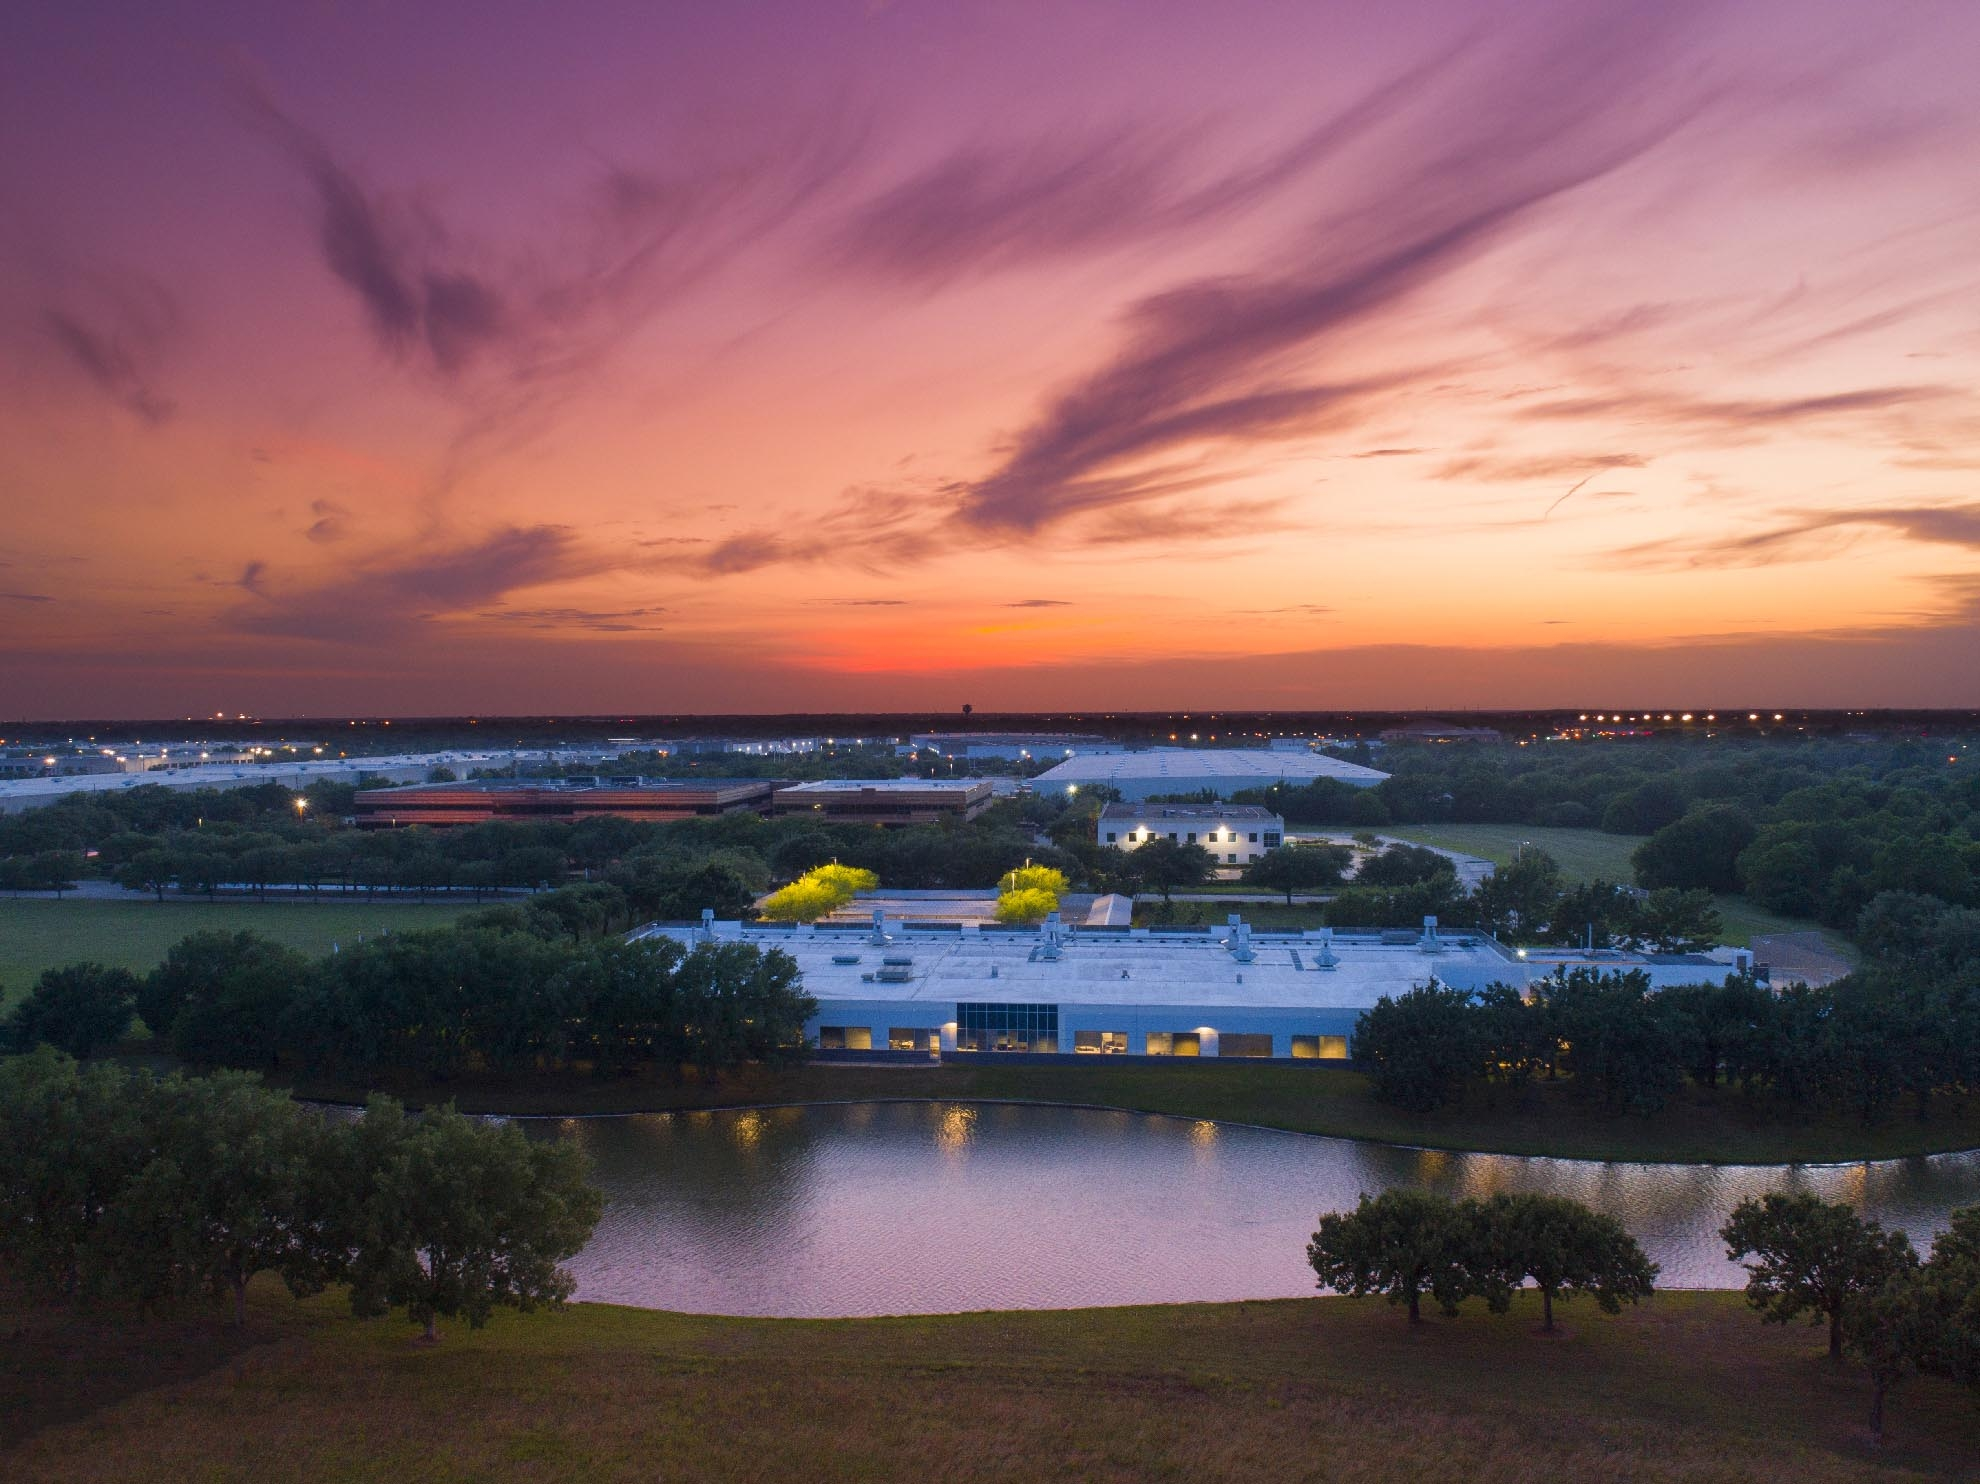 Drone photograph of Sabic facility Sugar Land Texas